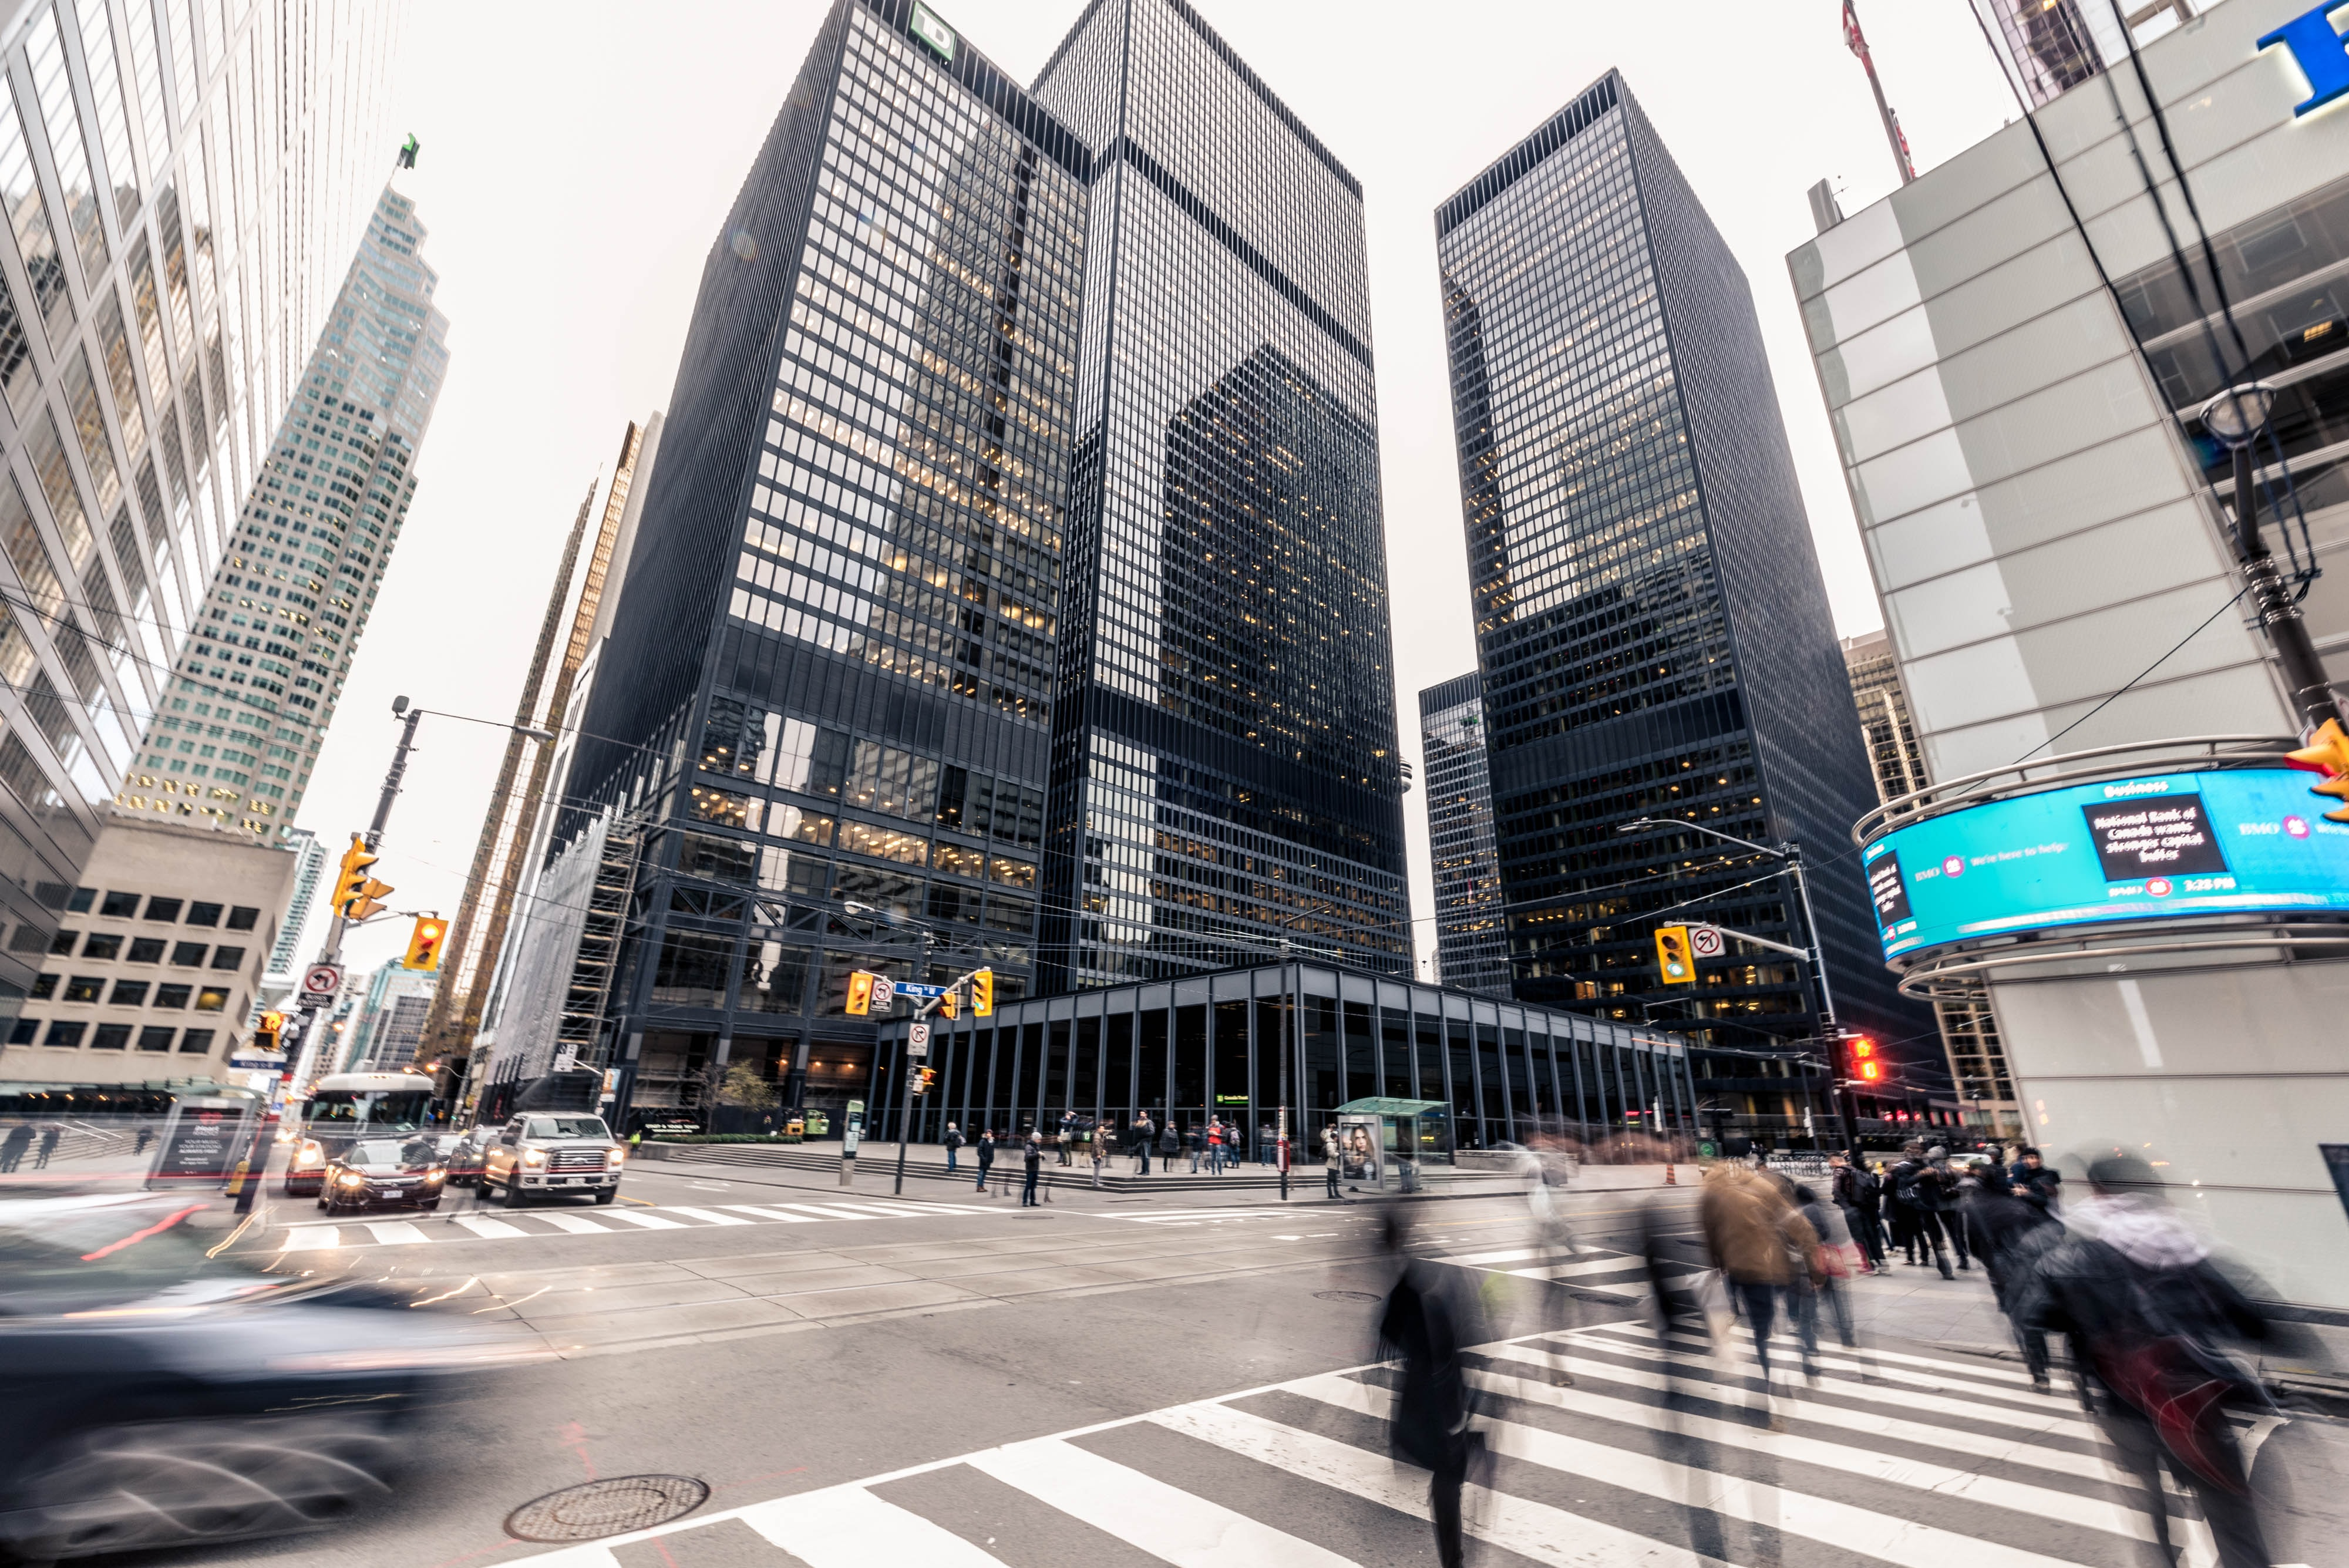 Image of an intersection in the Financial District of Toronto